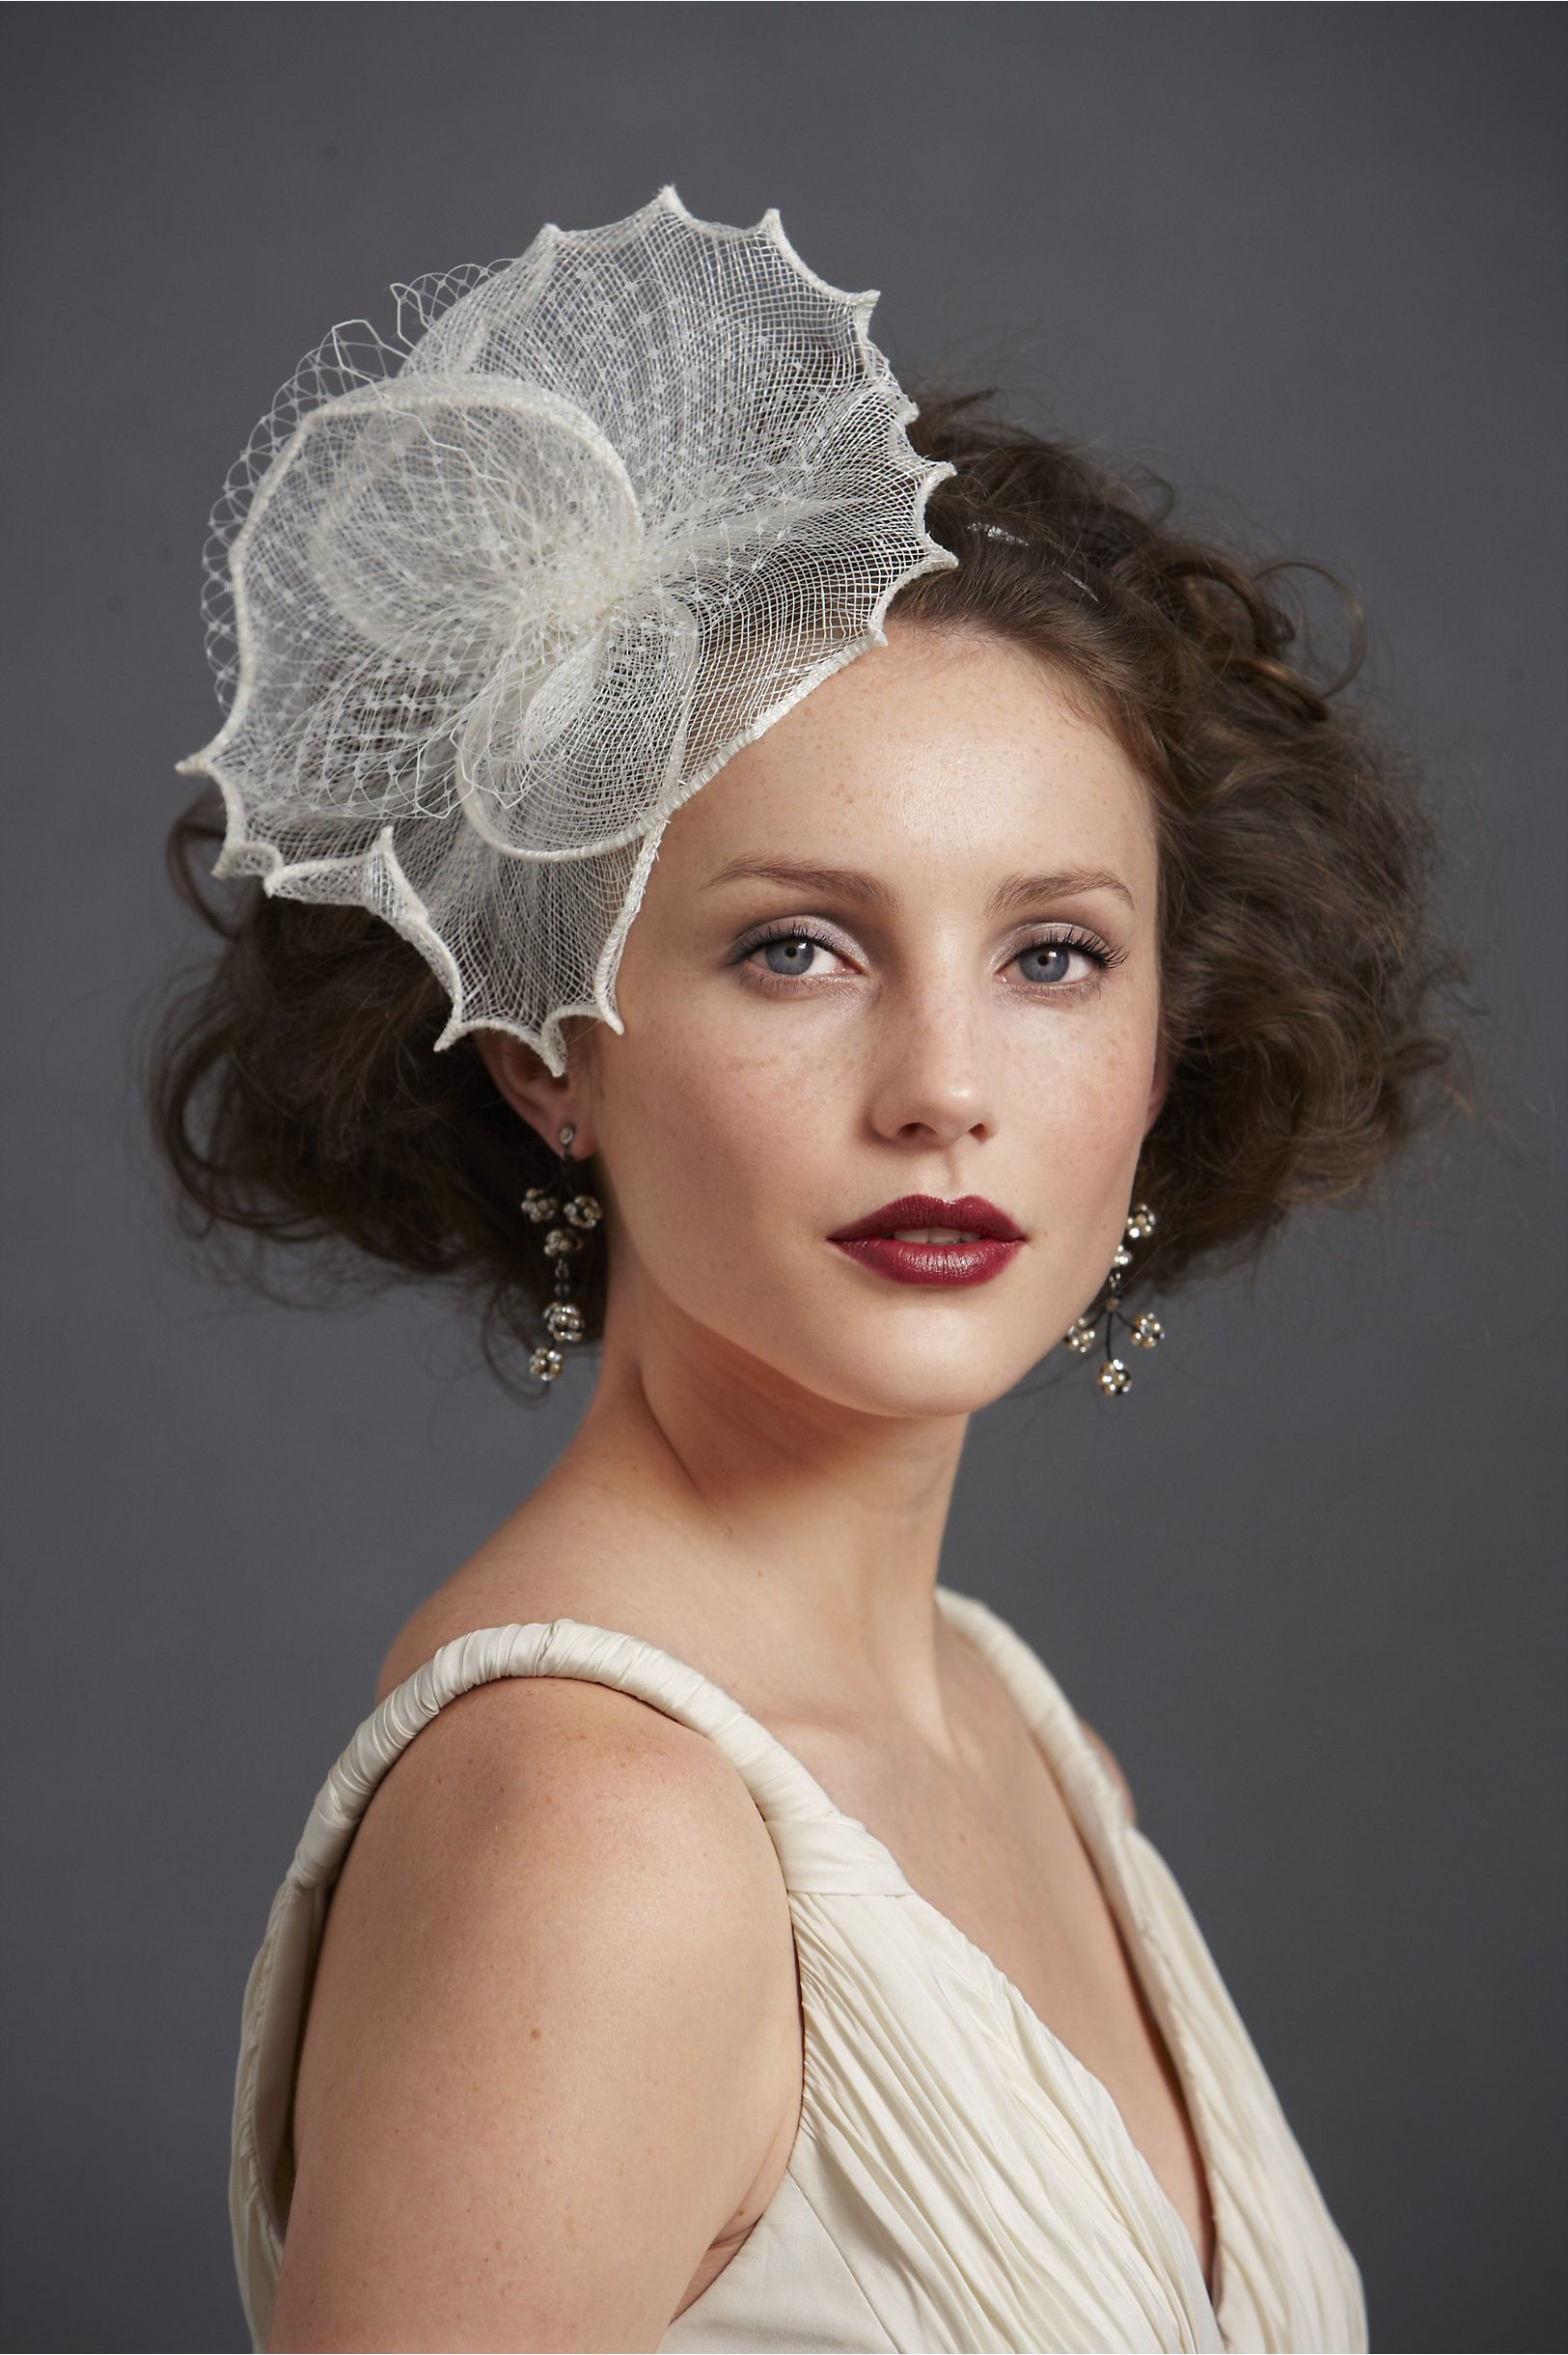 Wedding Hats For Short Hair: Perfect Way To Get Vintage With Short Hair!